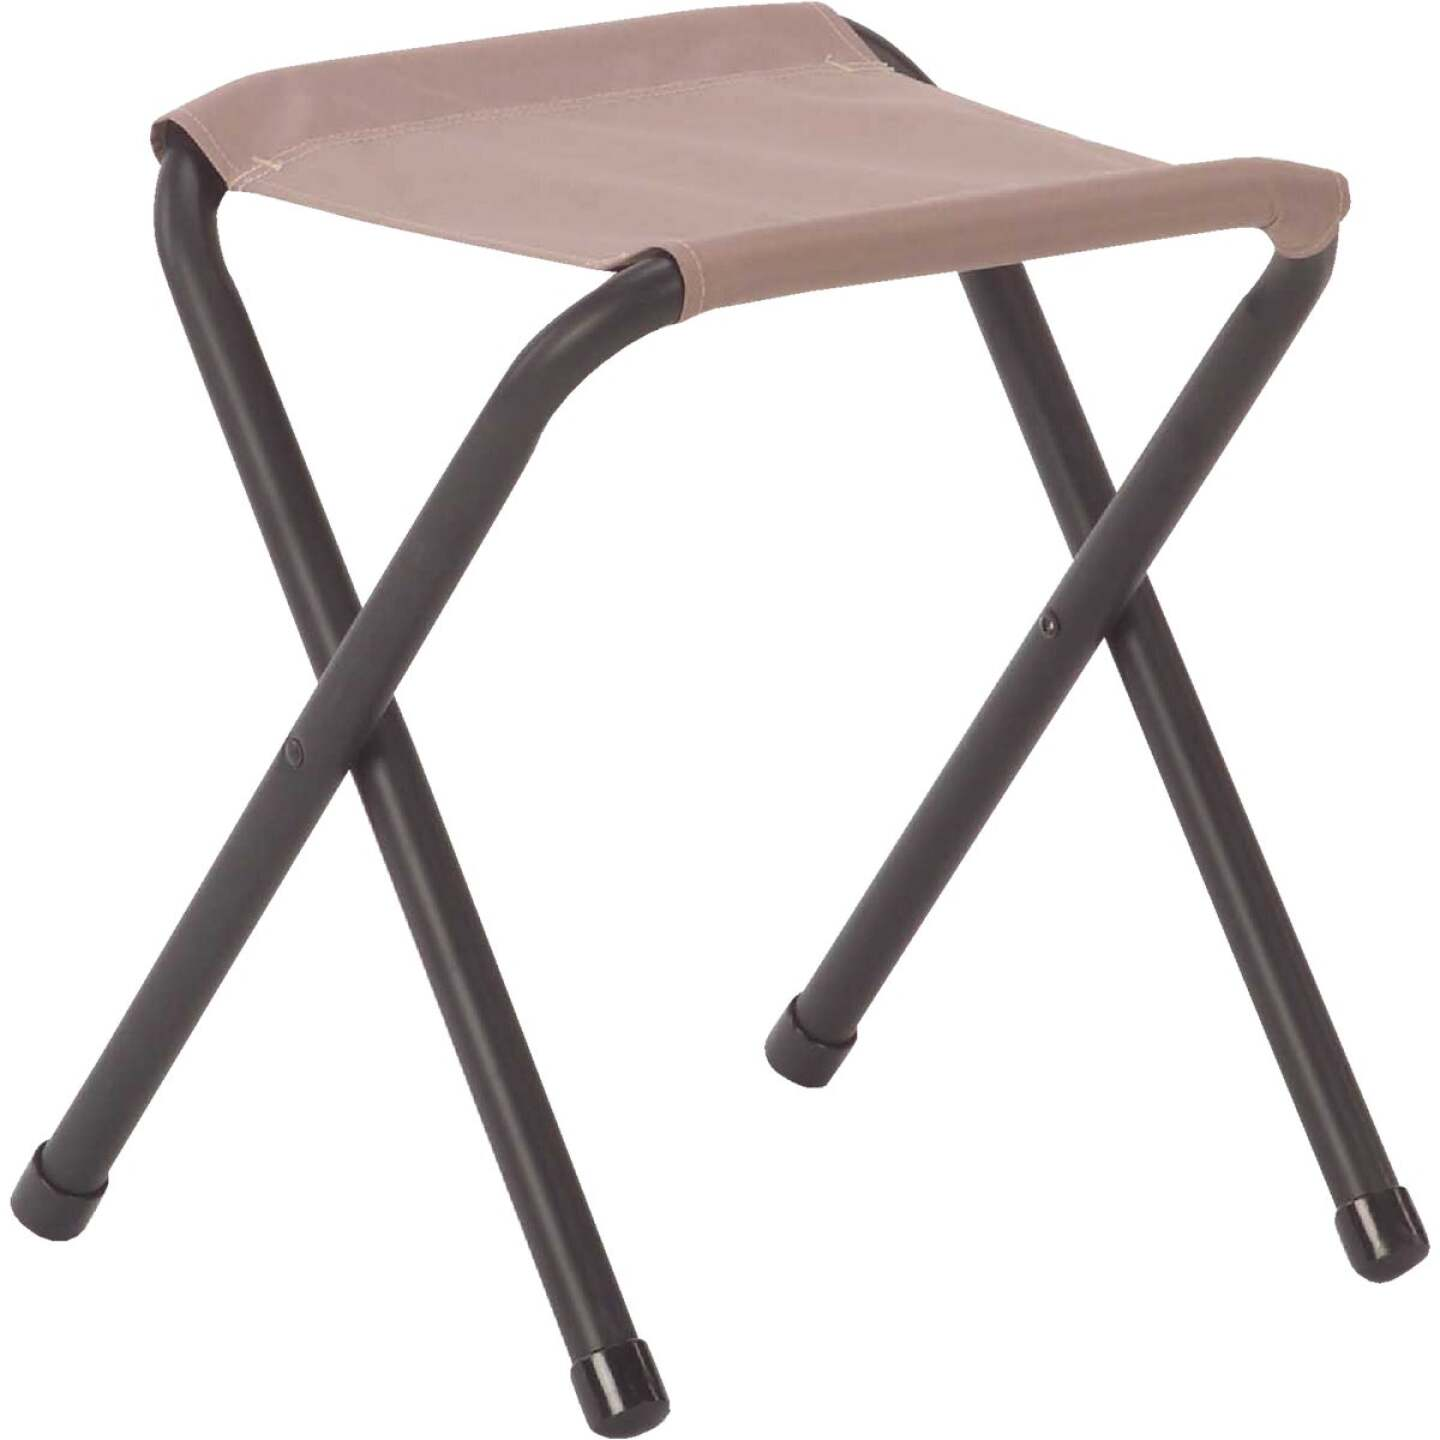 Coleman Rambler II 15-1/2 In. W. x 17 In. H. x 12-4/5 In. D. Powder-Coated Aluminum Camp Stool Image 1